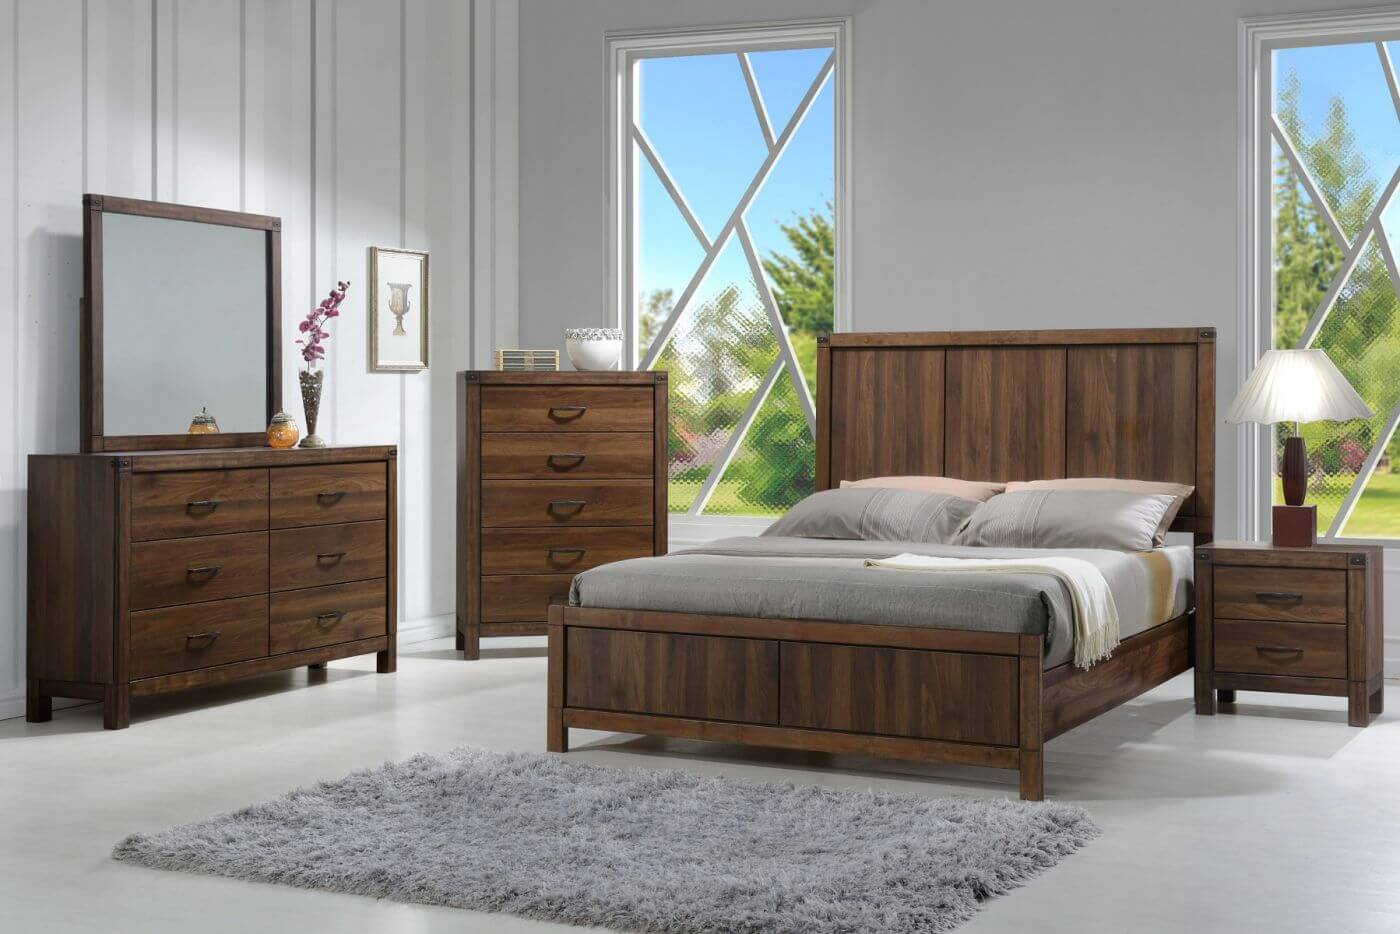 Footboard master bedroom decorating ideas